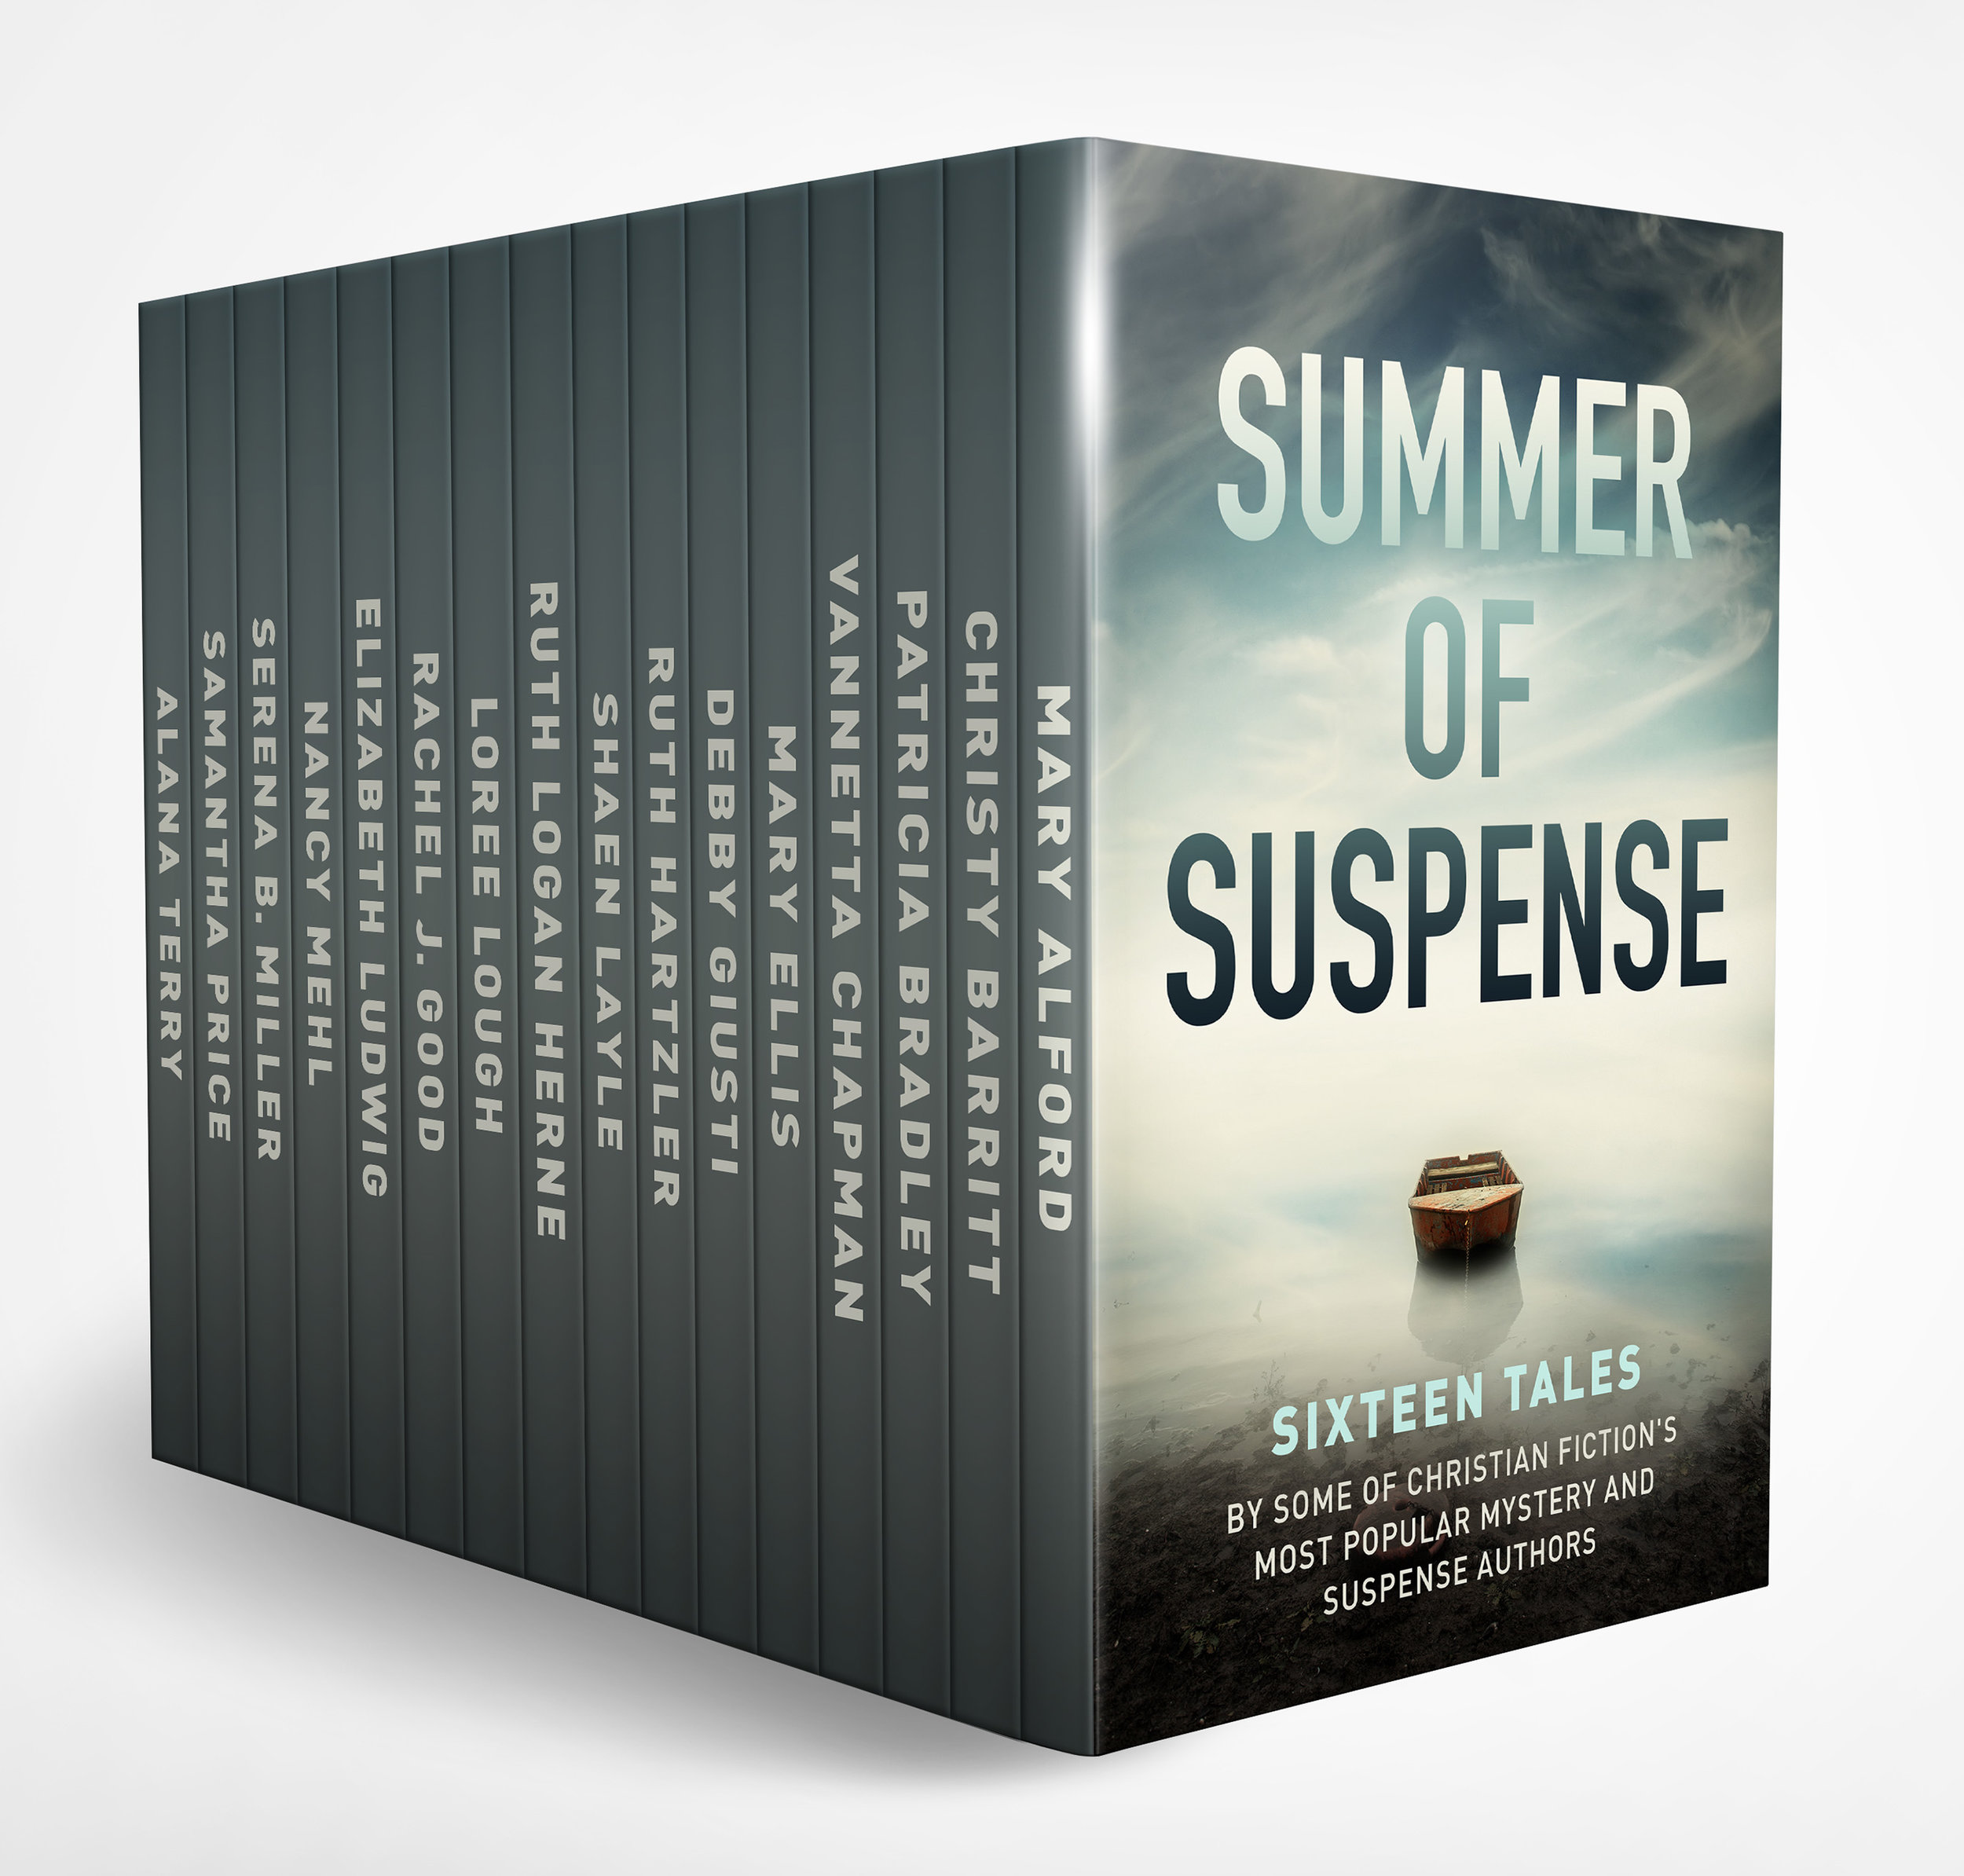 Summer of Suspense: Sixteen Tales - Grab this red hot Christian Suspense Anthology bargain for just 99c for a limited time only before it increases to $9.99!Start your summer off right with 16 gripping and never-before published tales of Christian suspense from today's most popular mystery and suspense authors.Join Mary Alford, Christy Barritt, Patricia Bradley, Vannetta Chapman, Mary Ellis, Debby Giusti, Rachel J. Good, Ruth Hartzler, Shaen Layle, Ruth Logan Herne, Loree Lough, Elizabeth Ludwig, Nancy Mehl, Serena B. Miller, Samantha Price, Alana Terry on a dangerous journey filled with mystery, suspense, and faith that that will keep you on the edge of your seat until the very end.AMAZONNOOKAPPLE